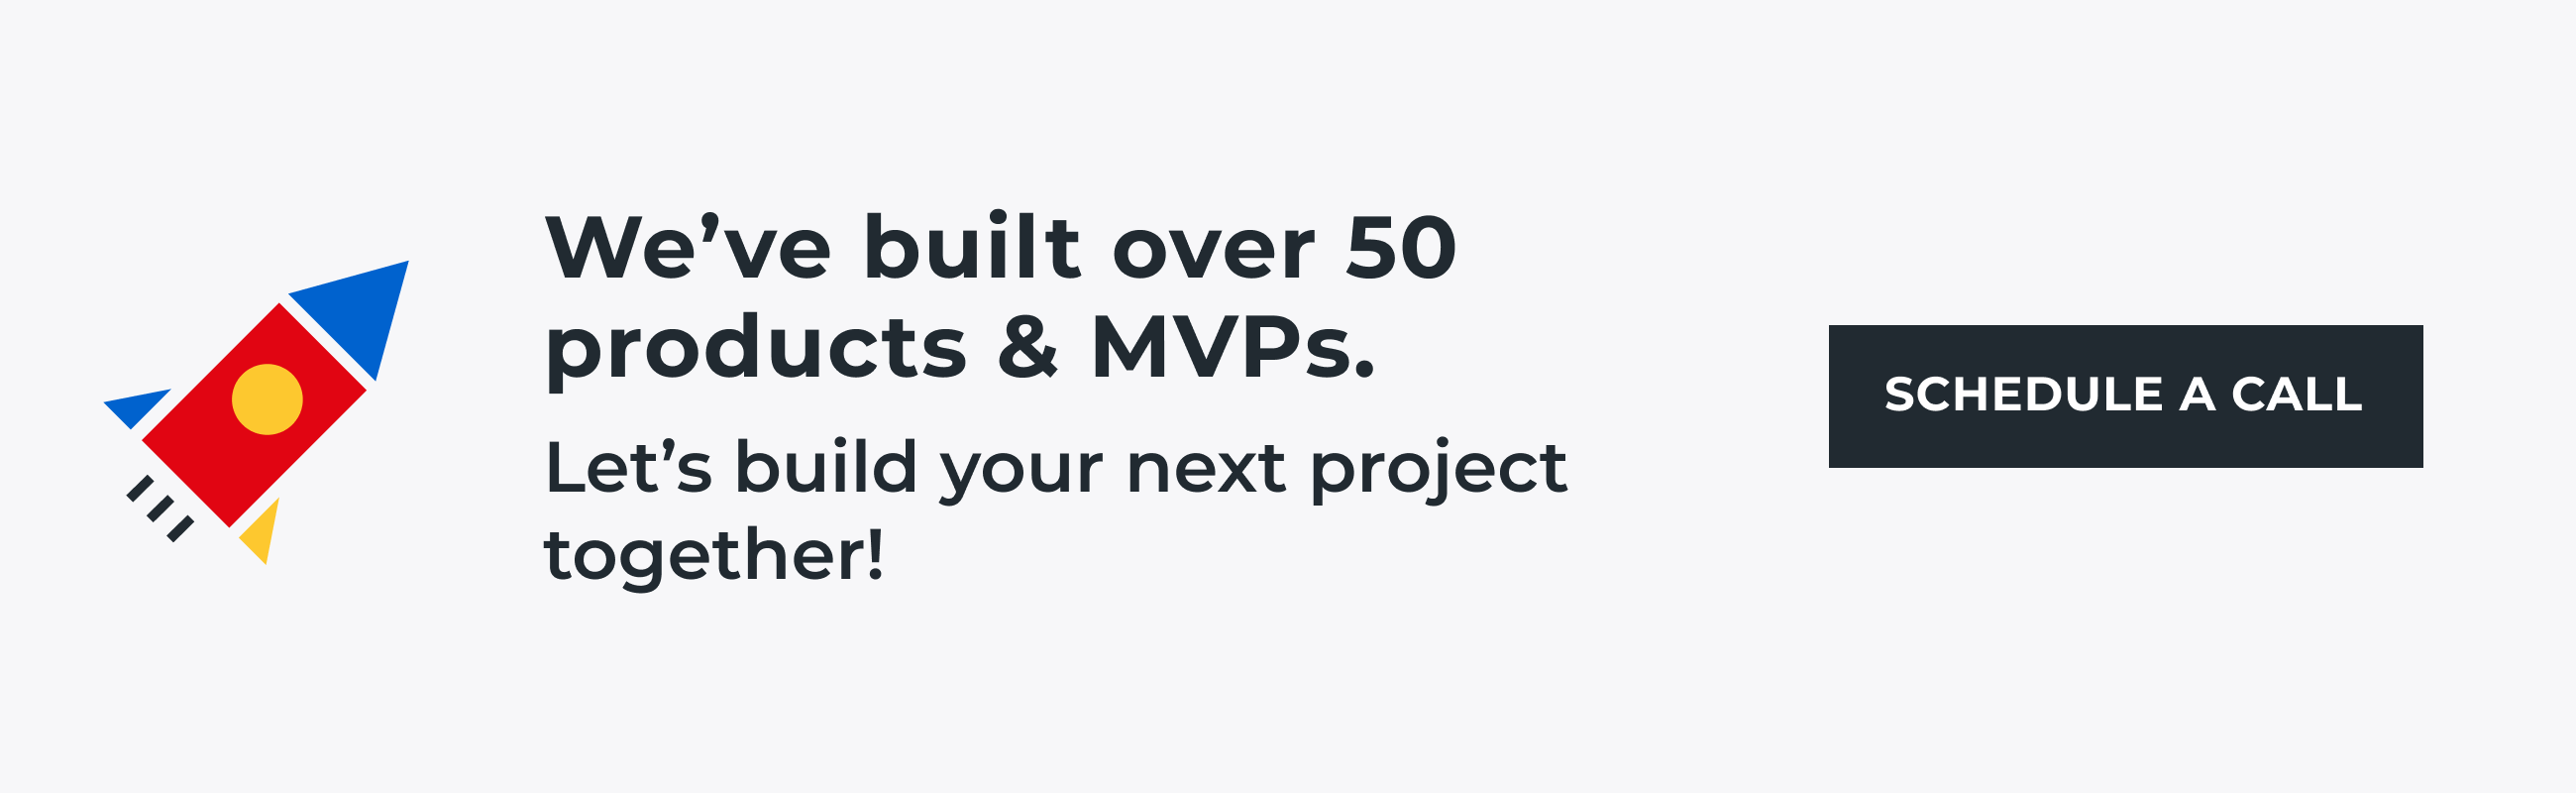 we built over 50 MVPs